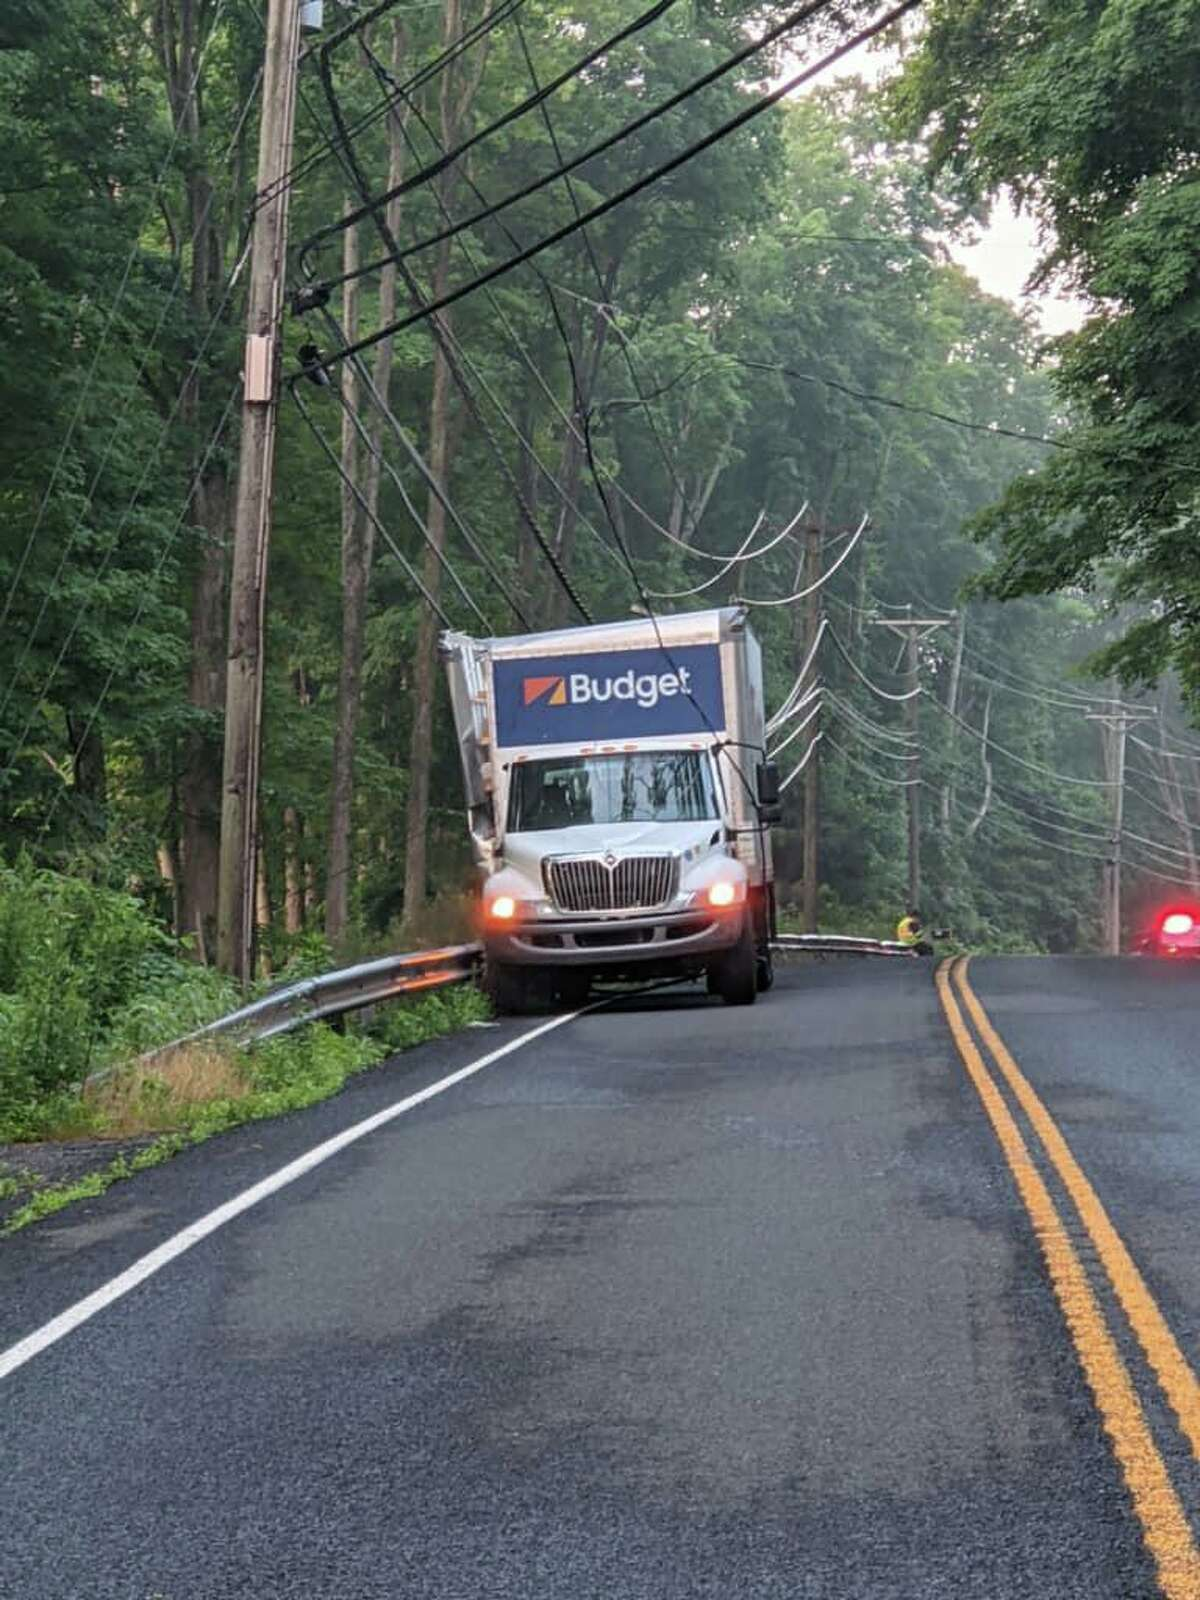 Route 111 through Monroe, Conn., is closed at East Village Road on Wednesday, July 7, 2021, after a vehicle collided with a pole.